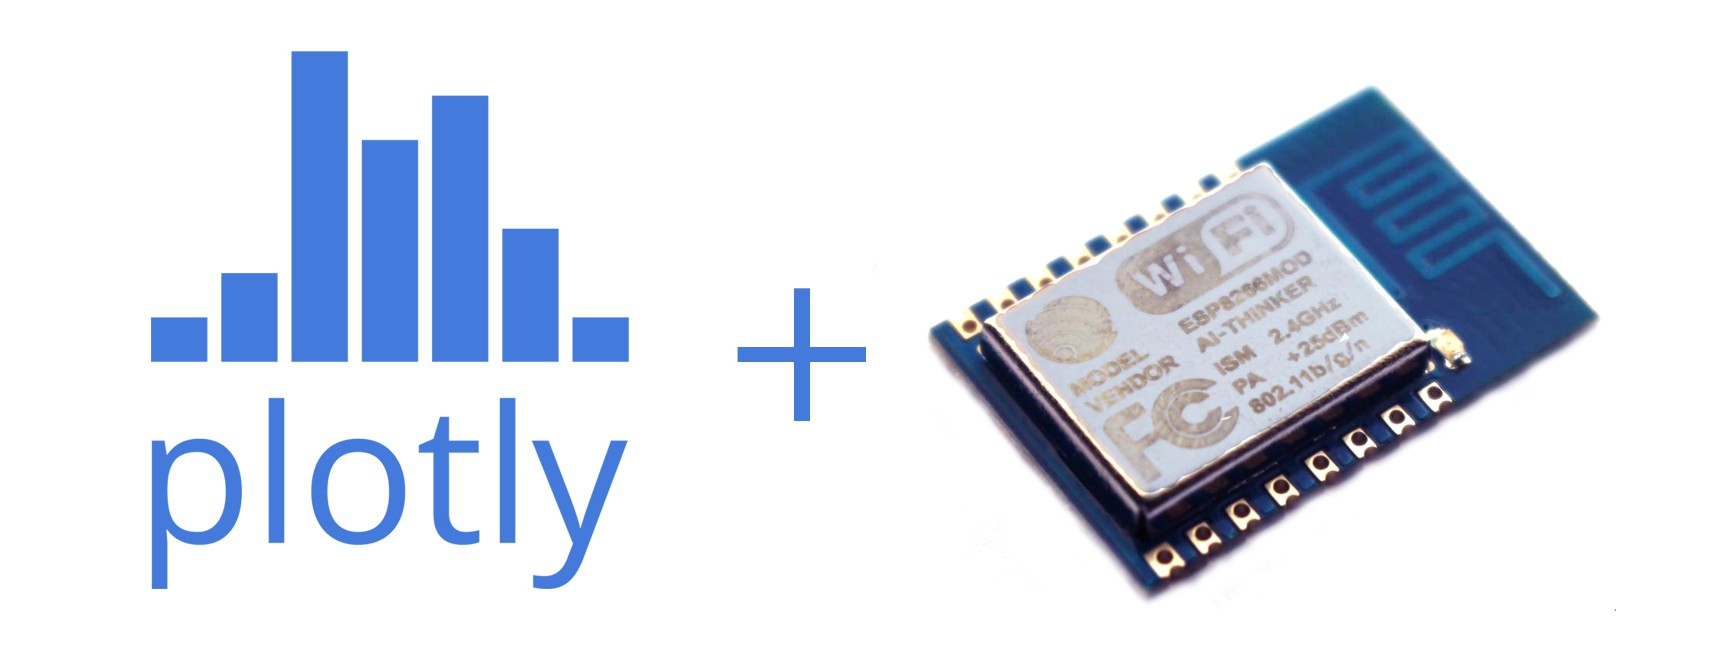 plotly + ESP8266 | Details | Hackaday io